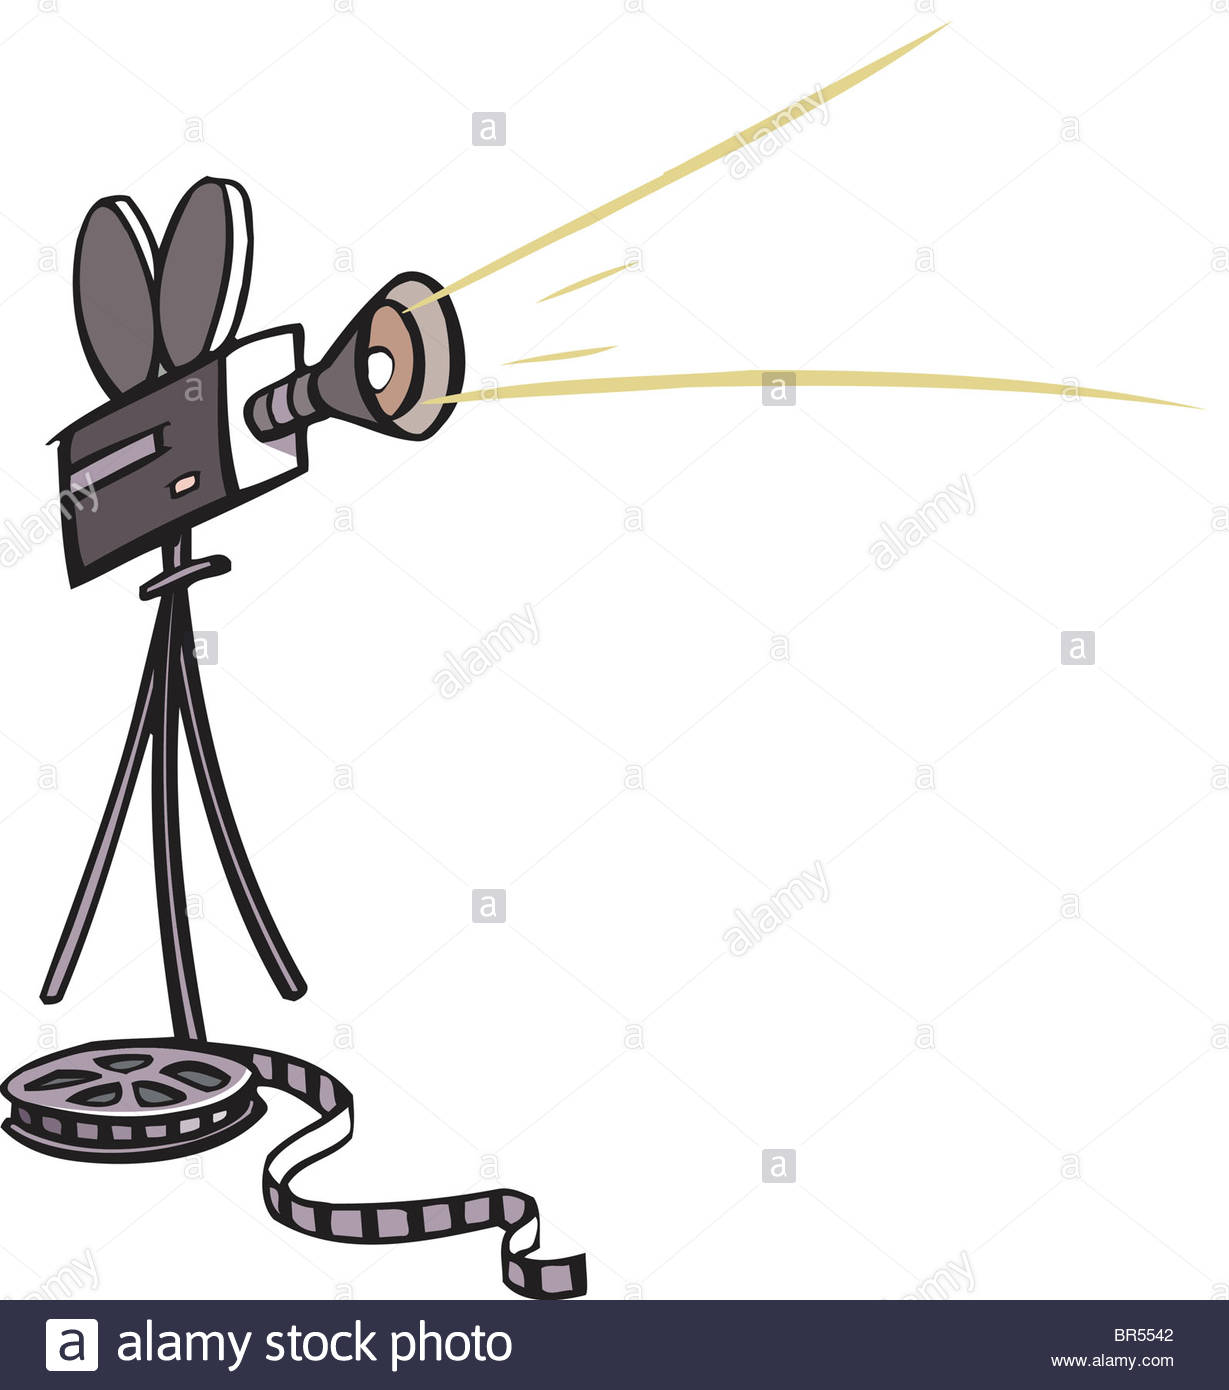 1229x1390 Drawing Of A Movie Camera And Film Stock Photo 31461250